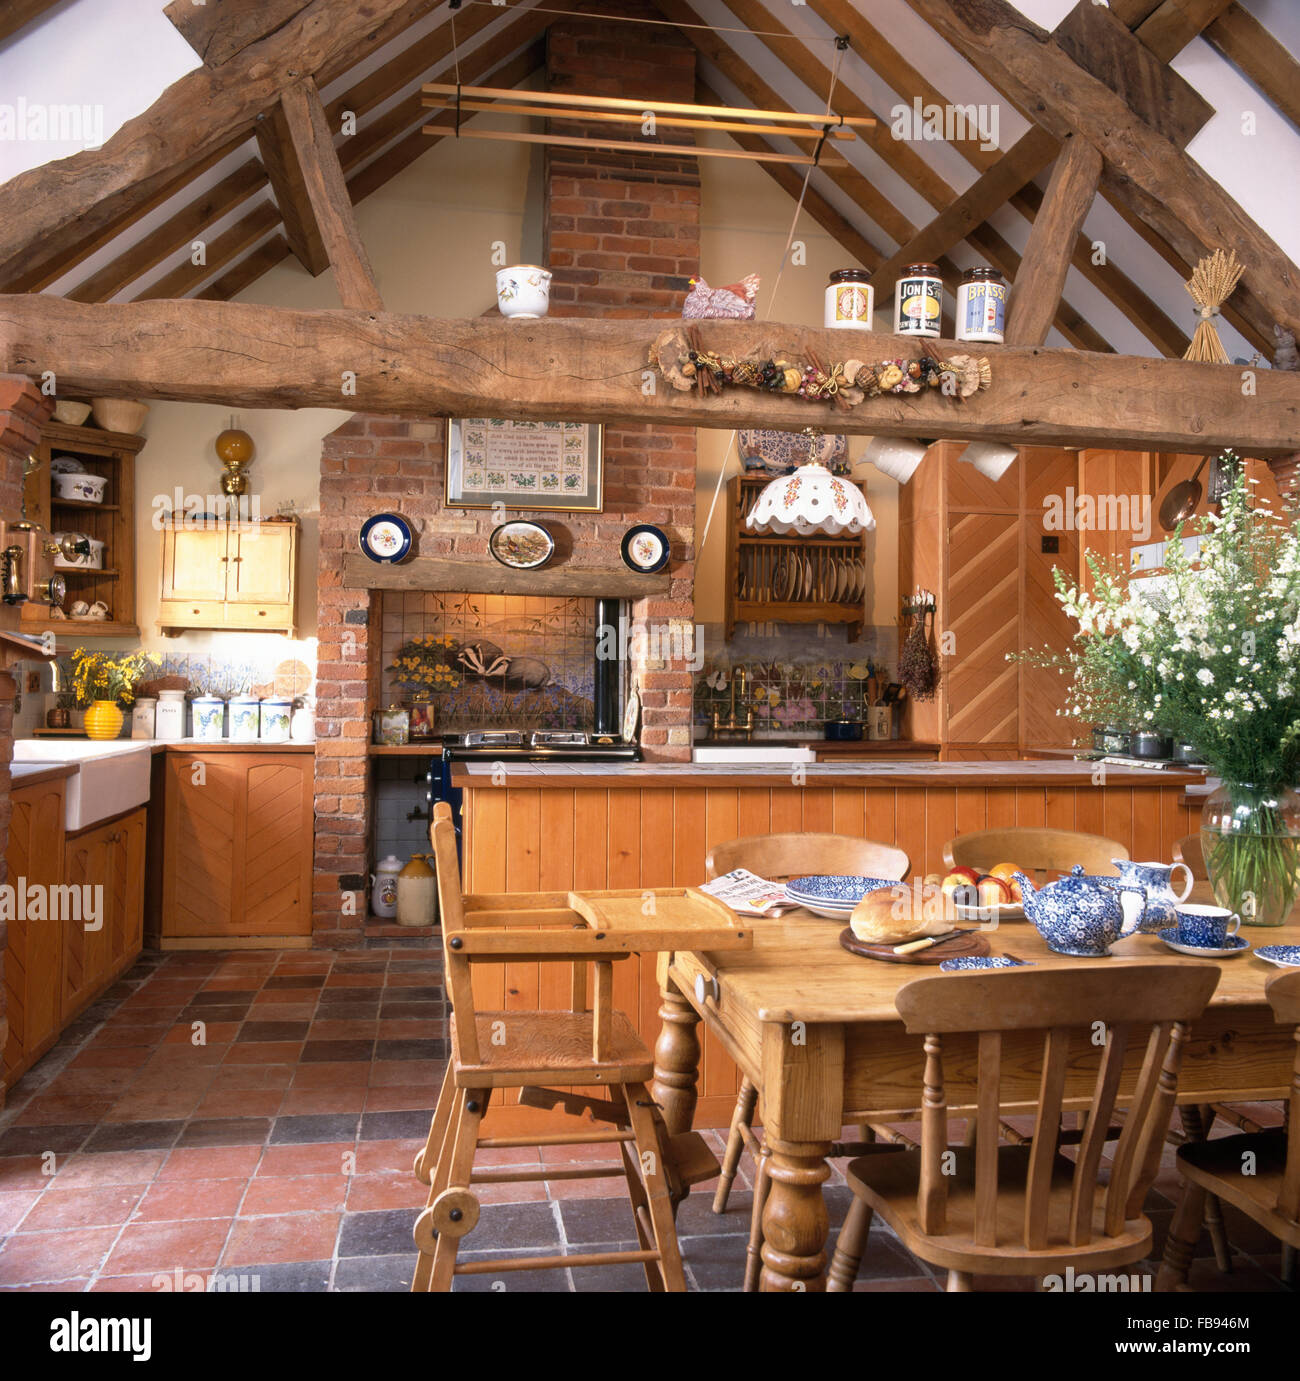 wooden chairs and childs high chair at pine table in barn conversion FB946M